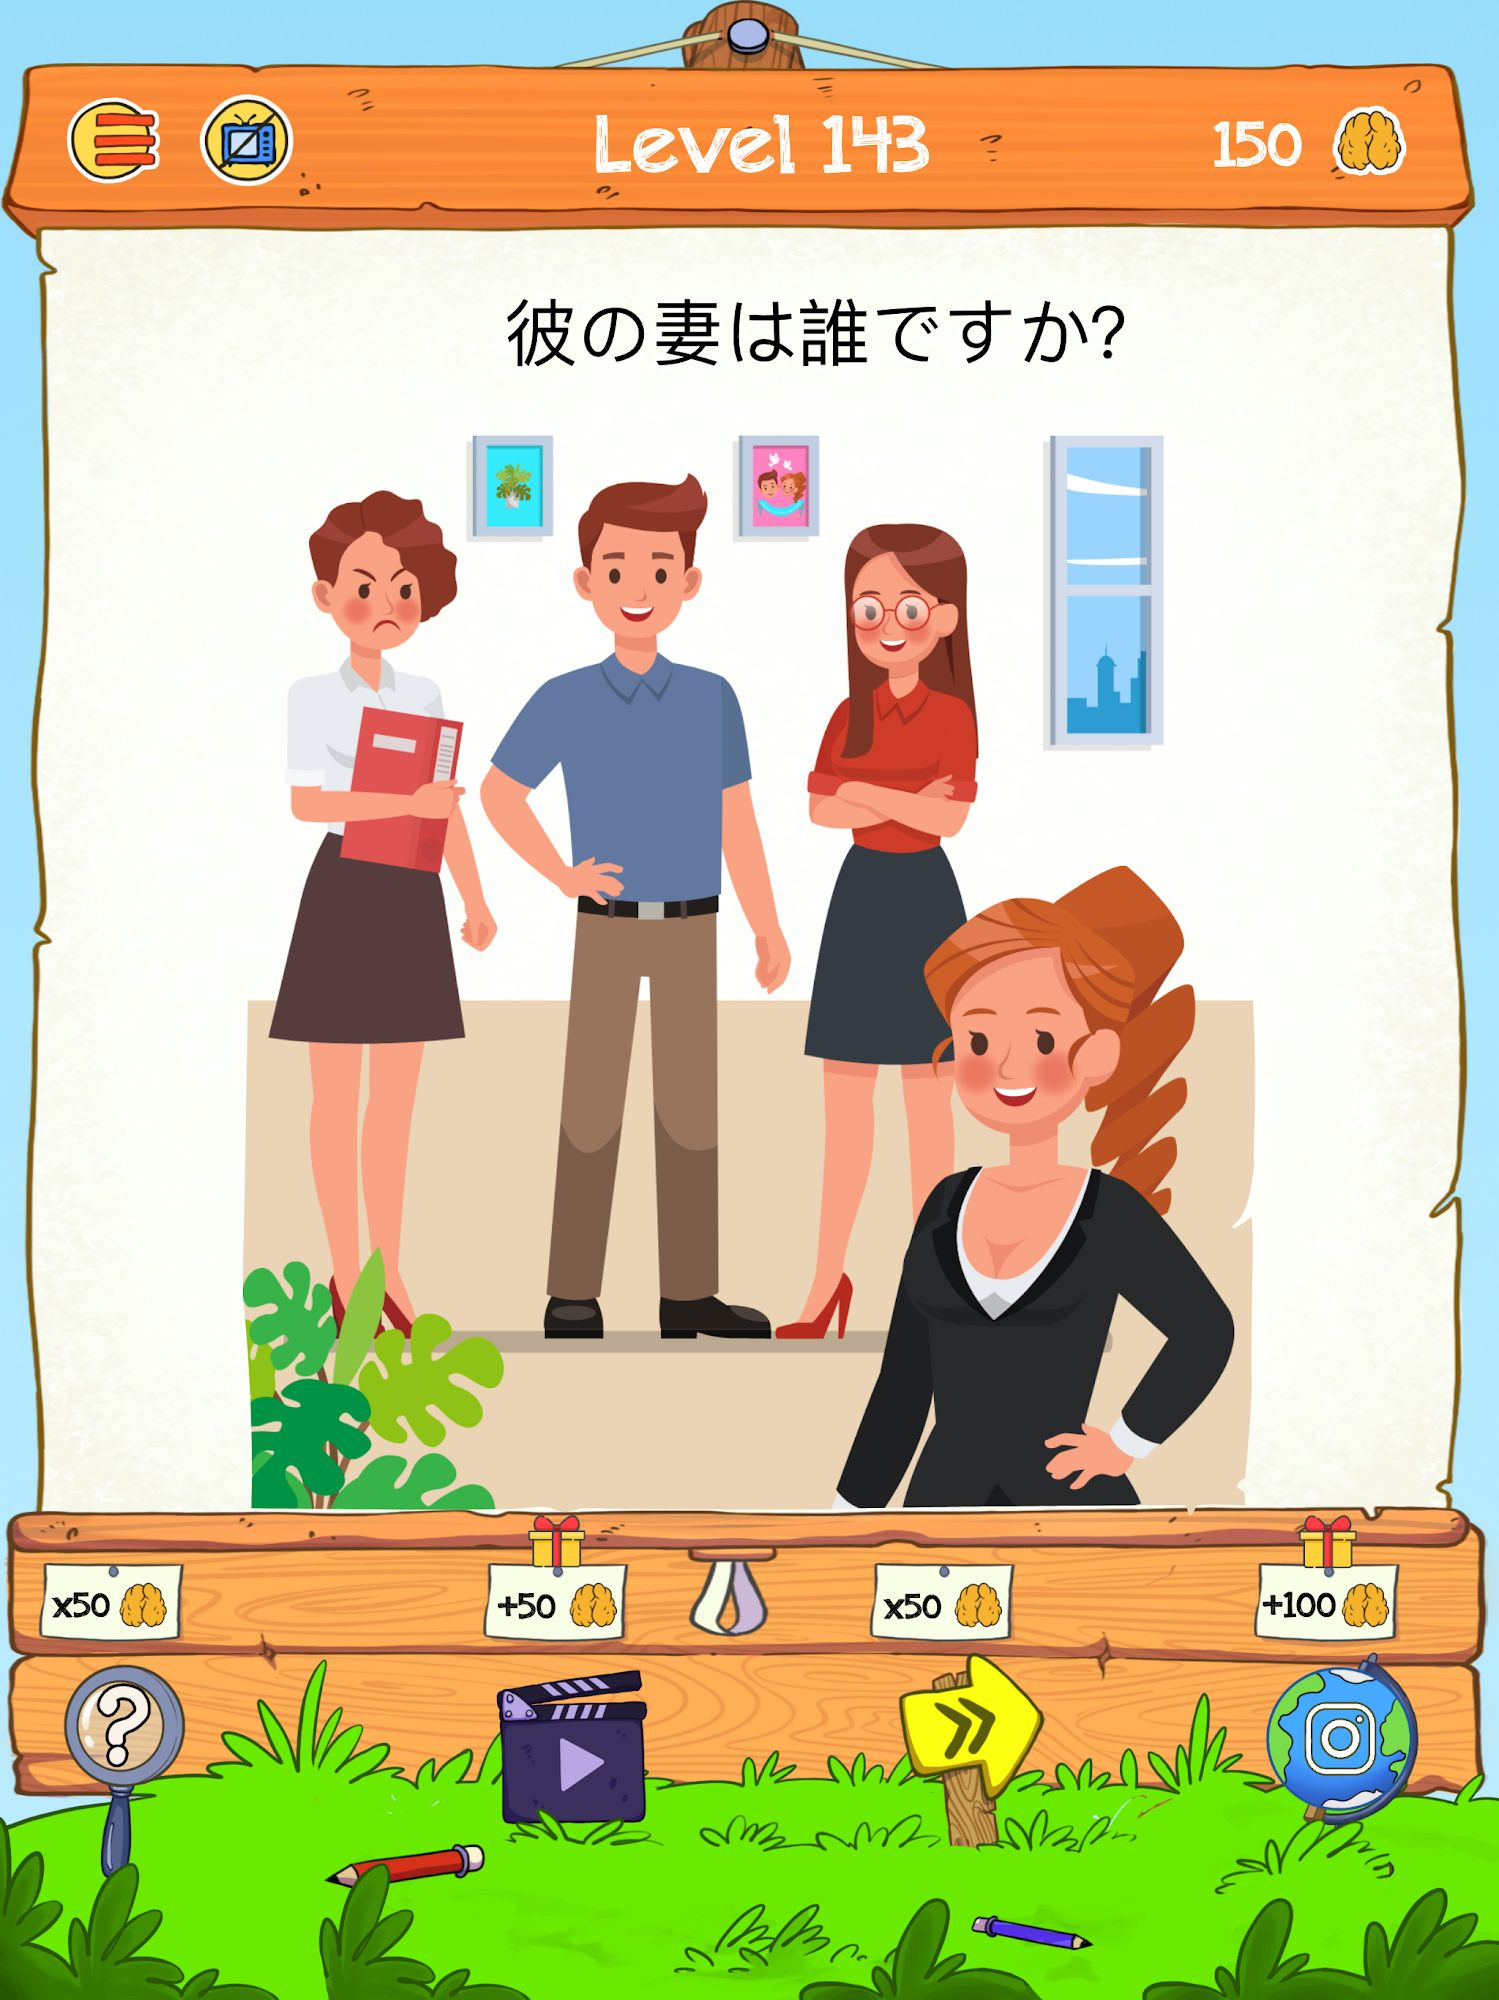 Braindom 2: Who is Lying? Fun Brain Teaser Riddles スクリーンショット1